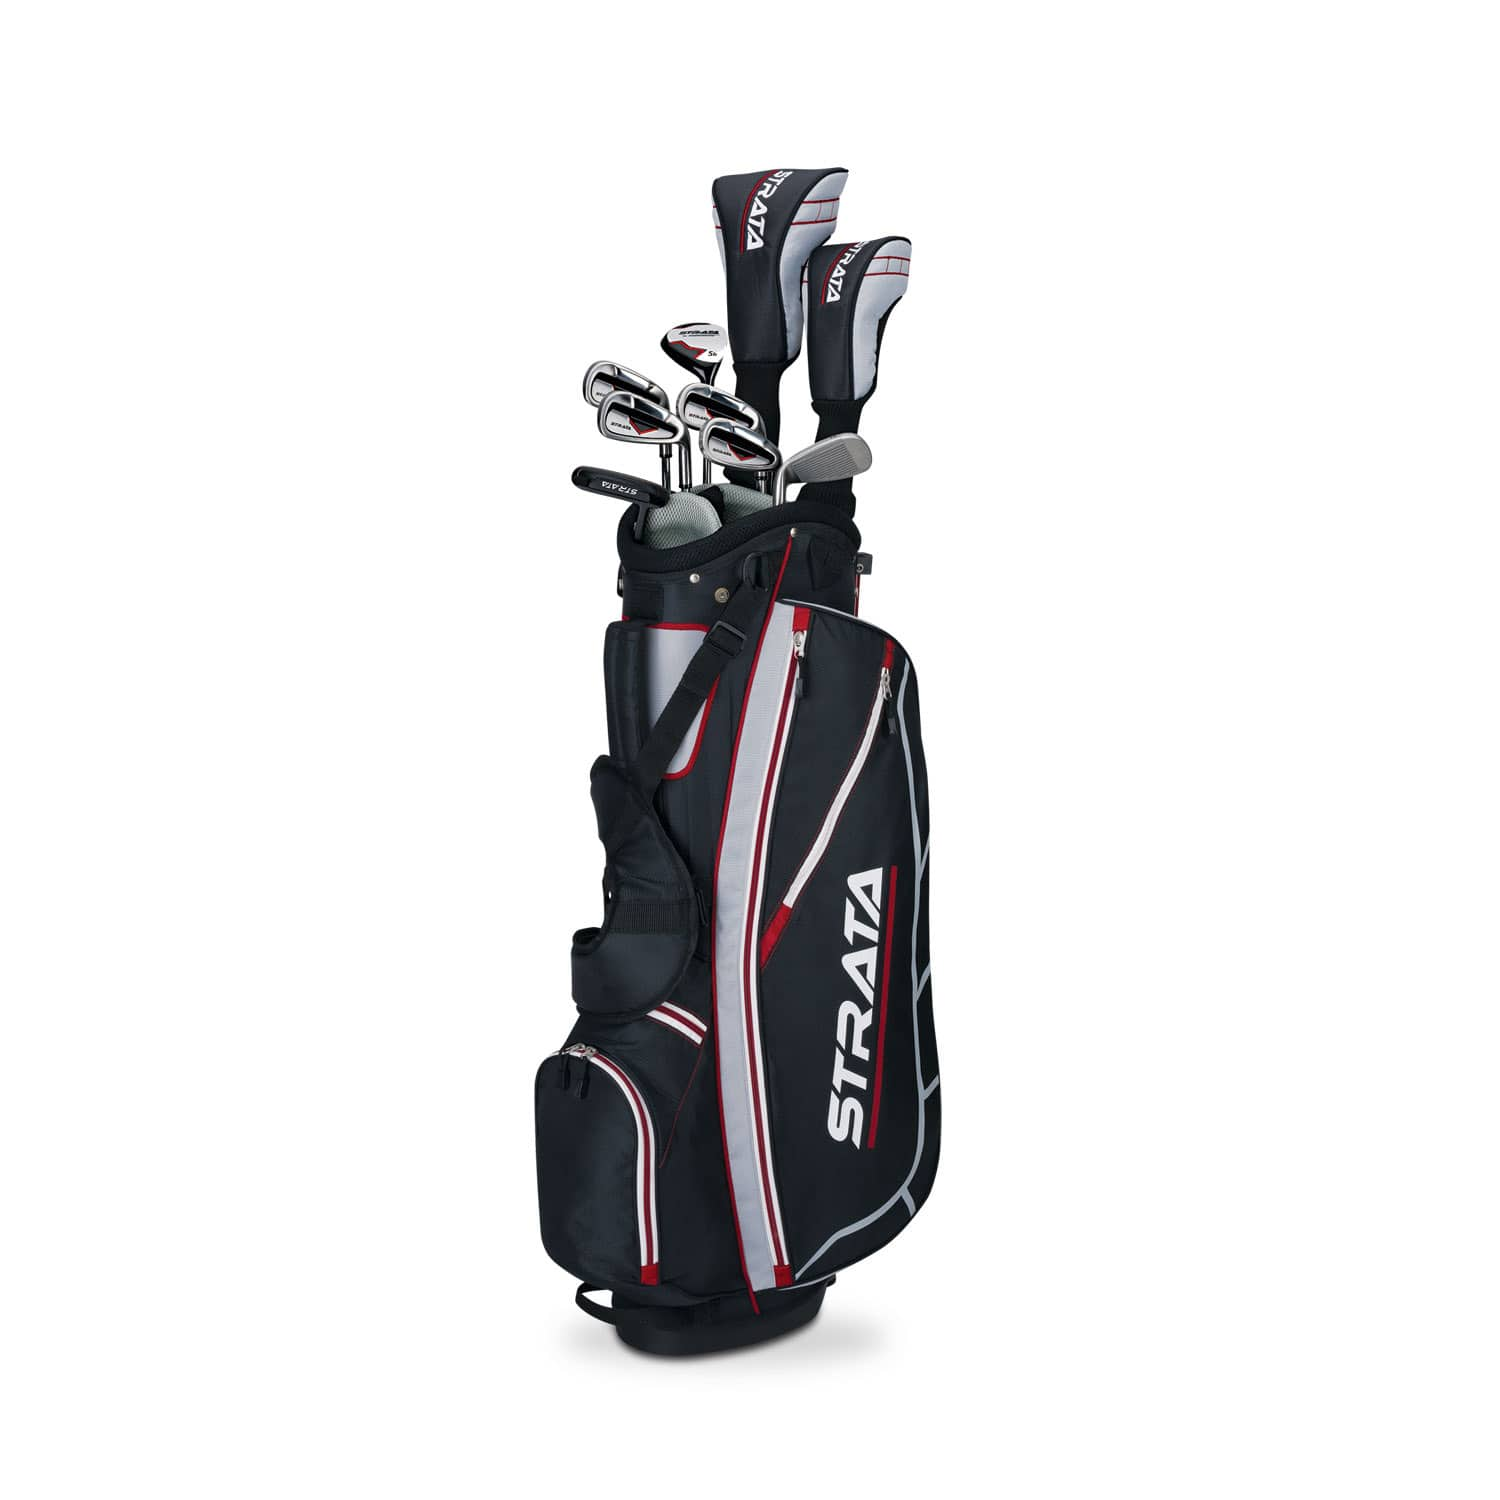 12-Piece Callaway Men's Left-Handed Strata Complete Golf Club Set with Bag $163 + Free shipping